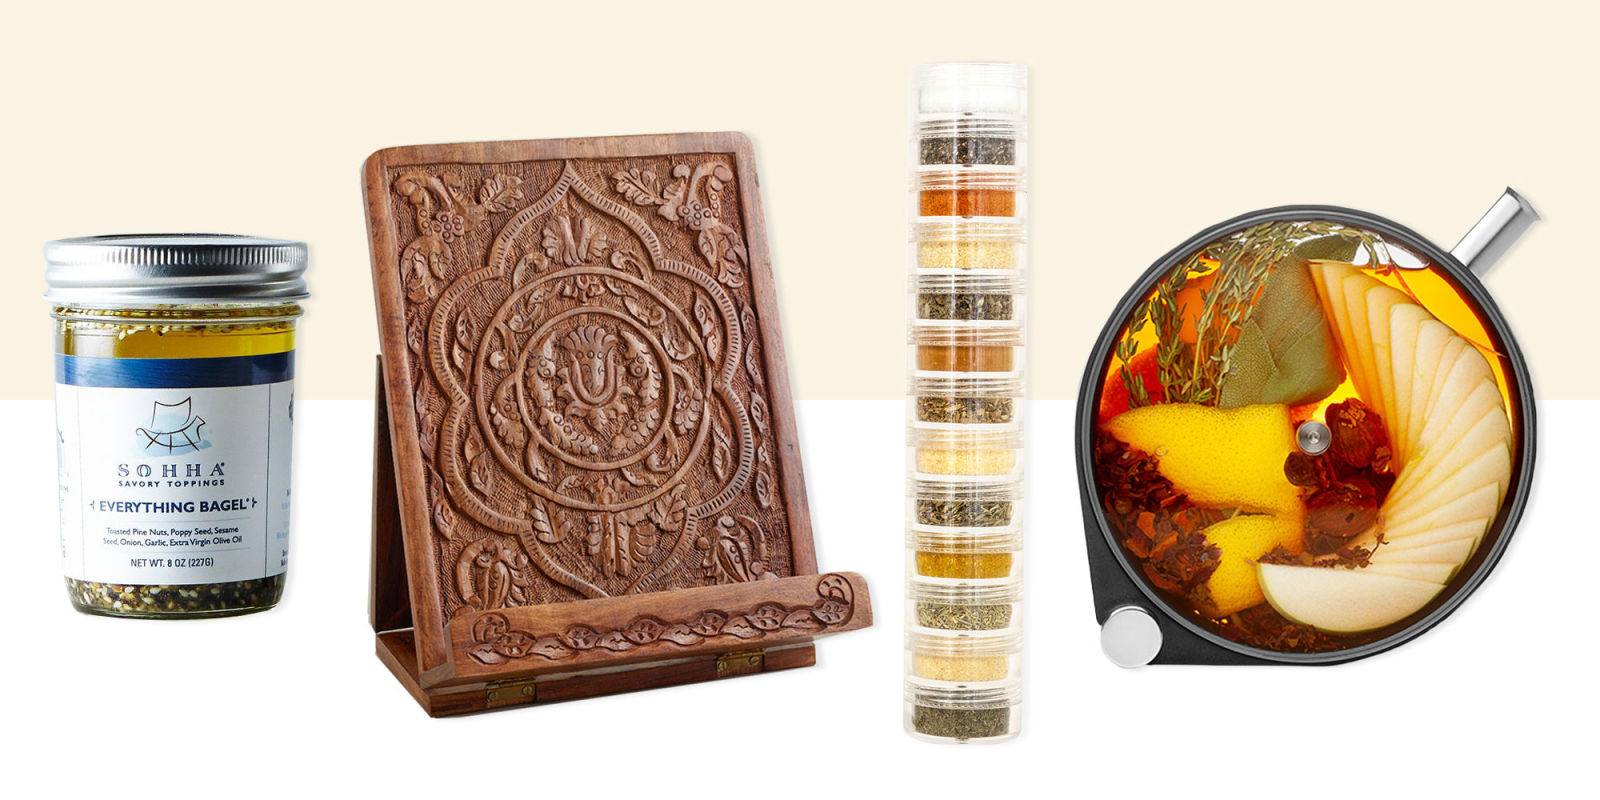 15 best kitchen gifts for cooks 2017 - chic kitchen and cooking